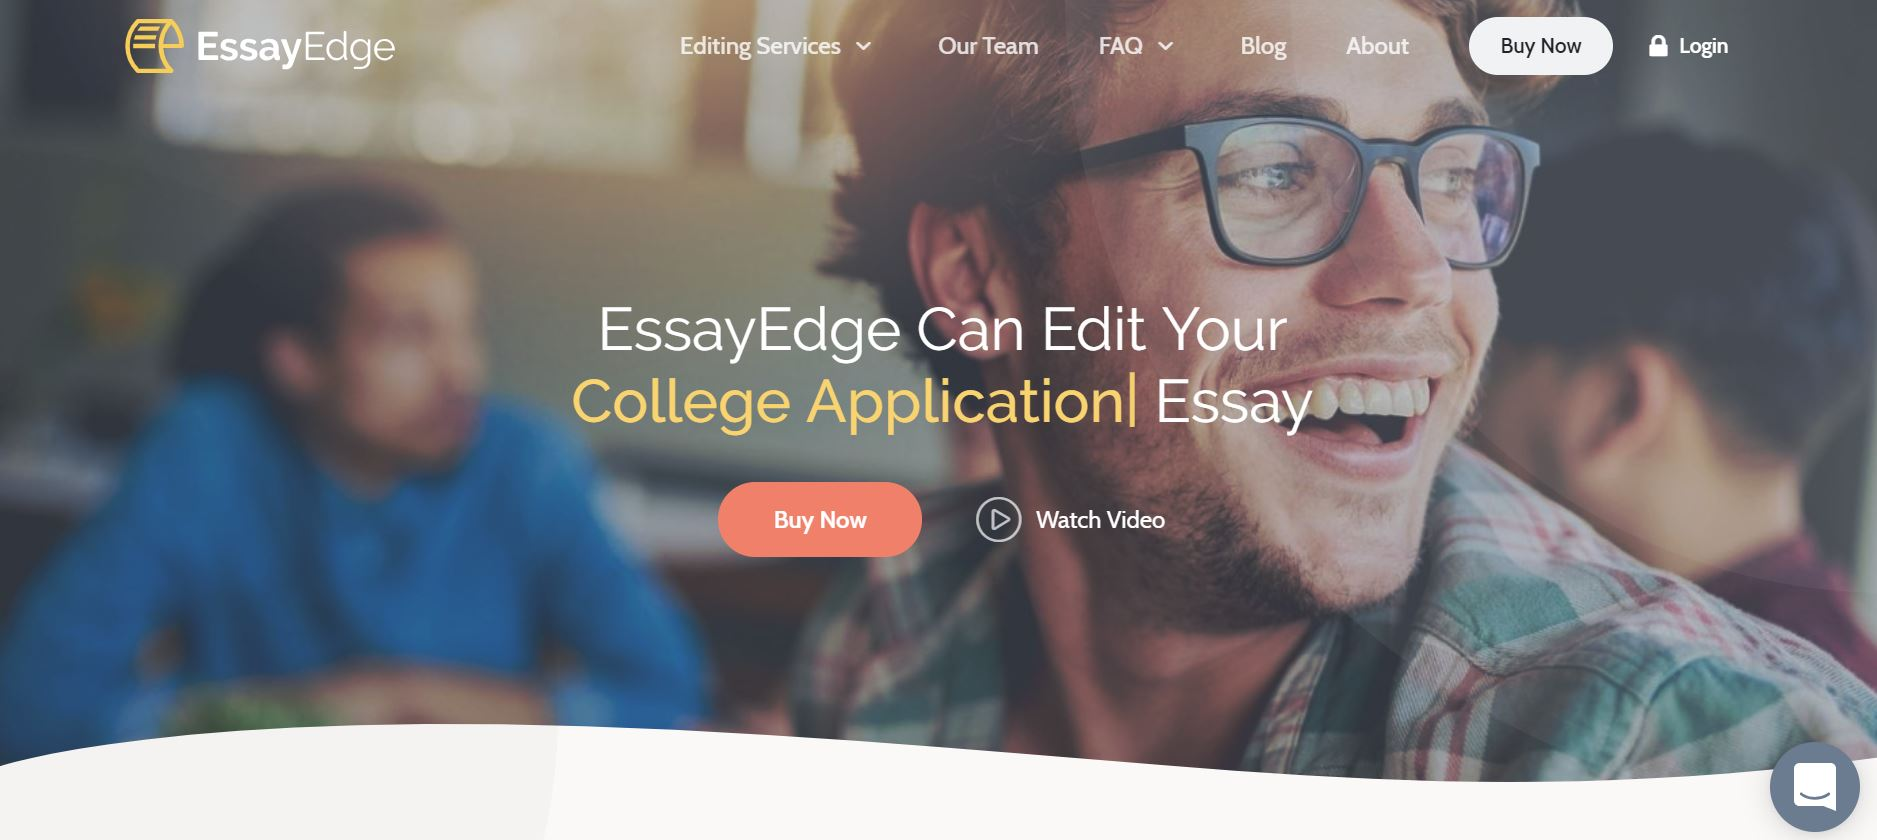 screenshot of the affiliate sign up page for EssayEdge